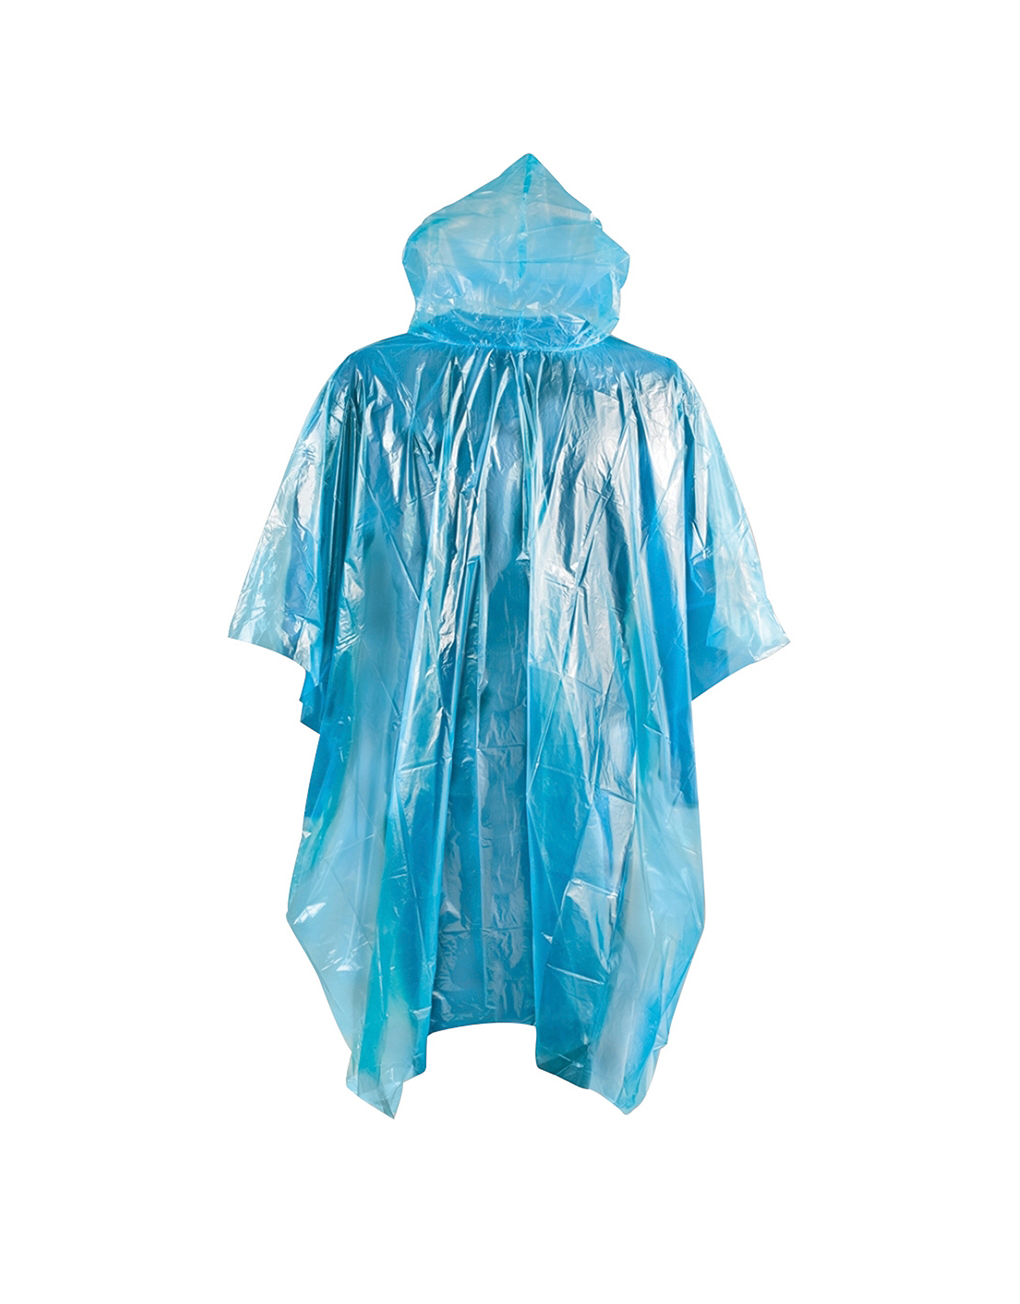 Biodegradable Poncho Pamper The Camper One Stop Shop